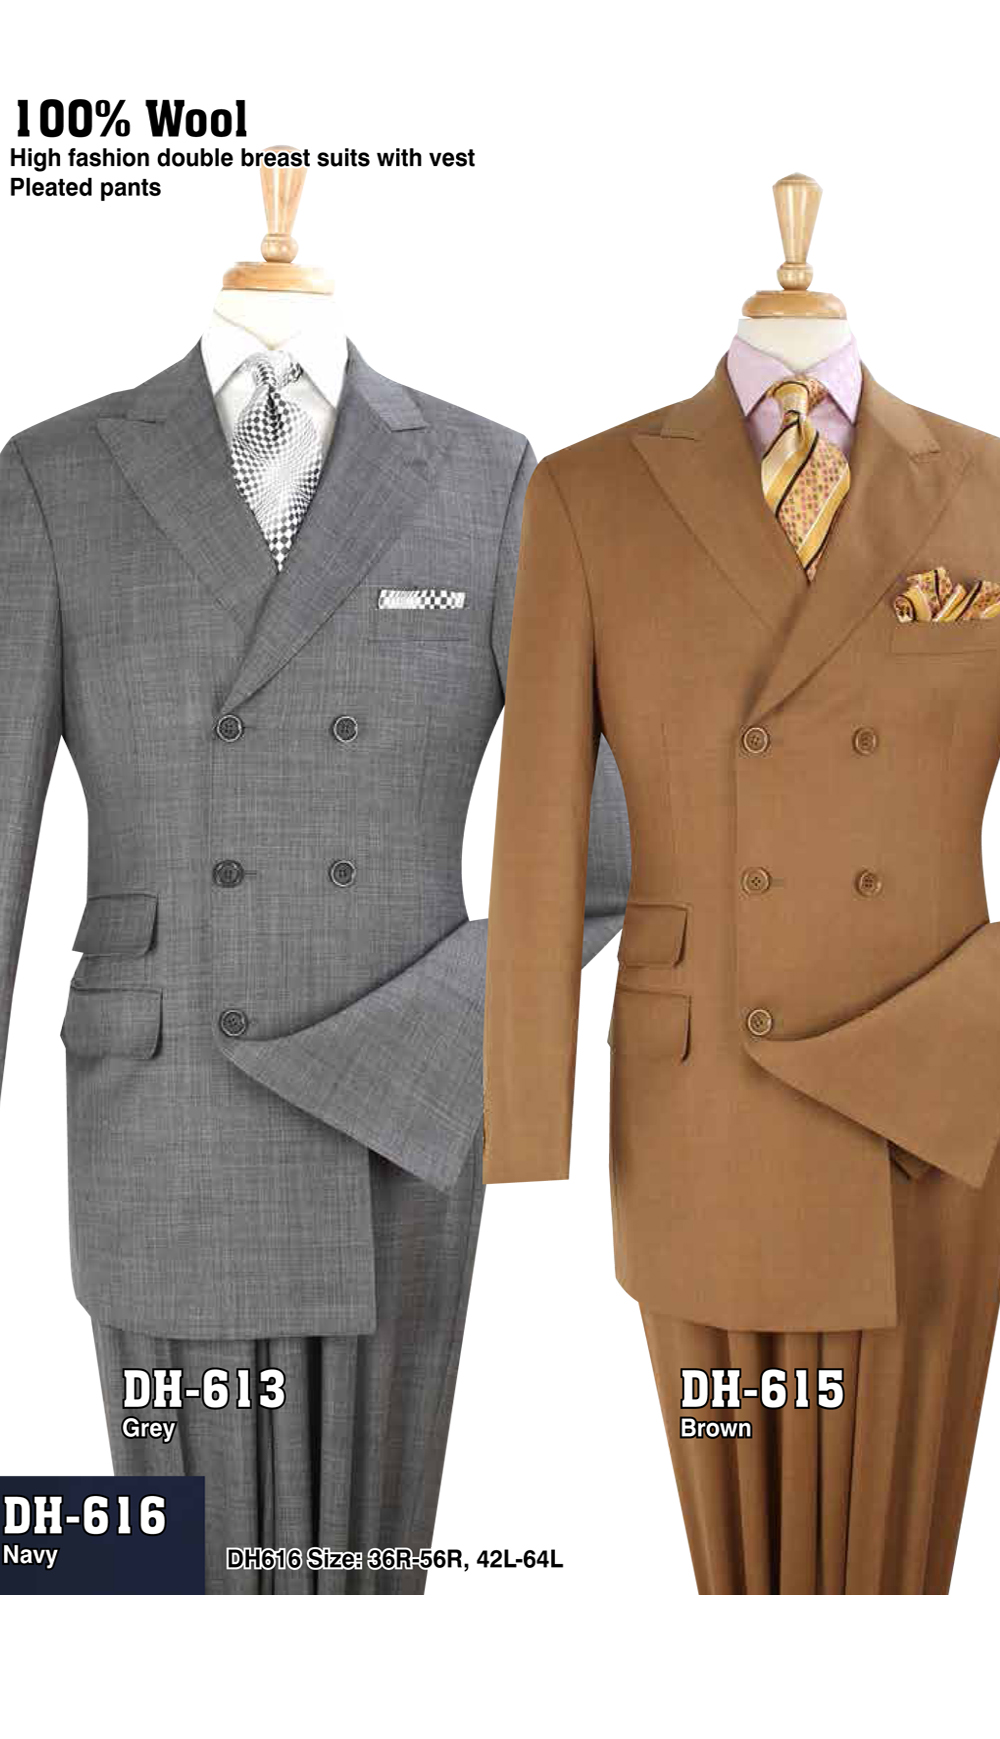 High Fashion Men Suits DH-613